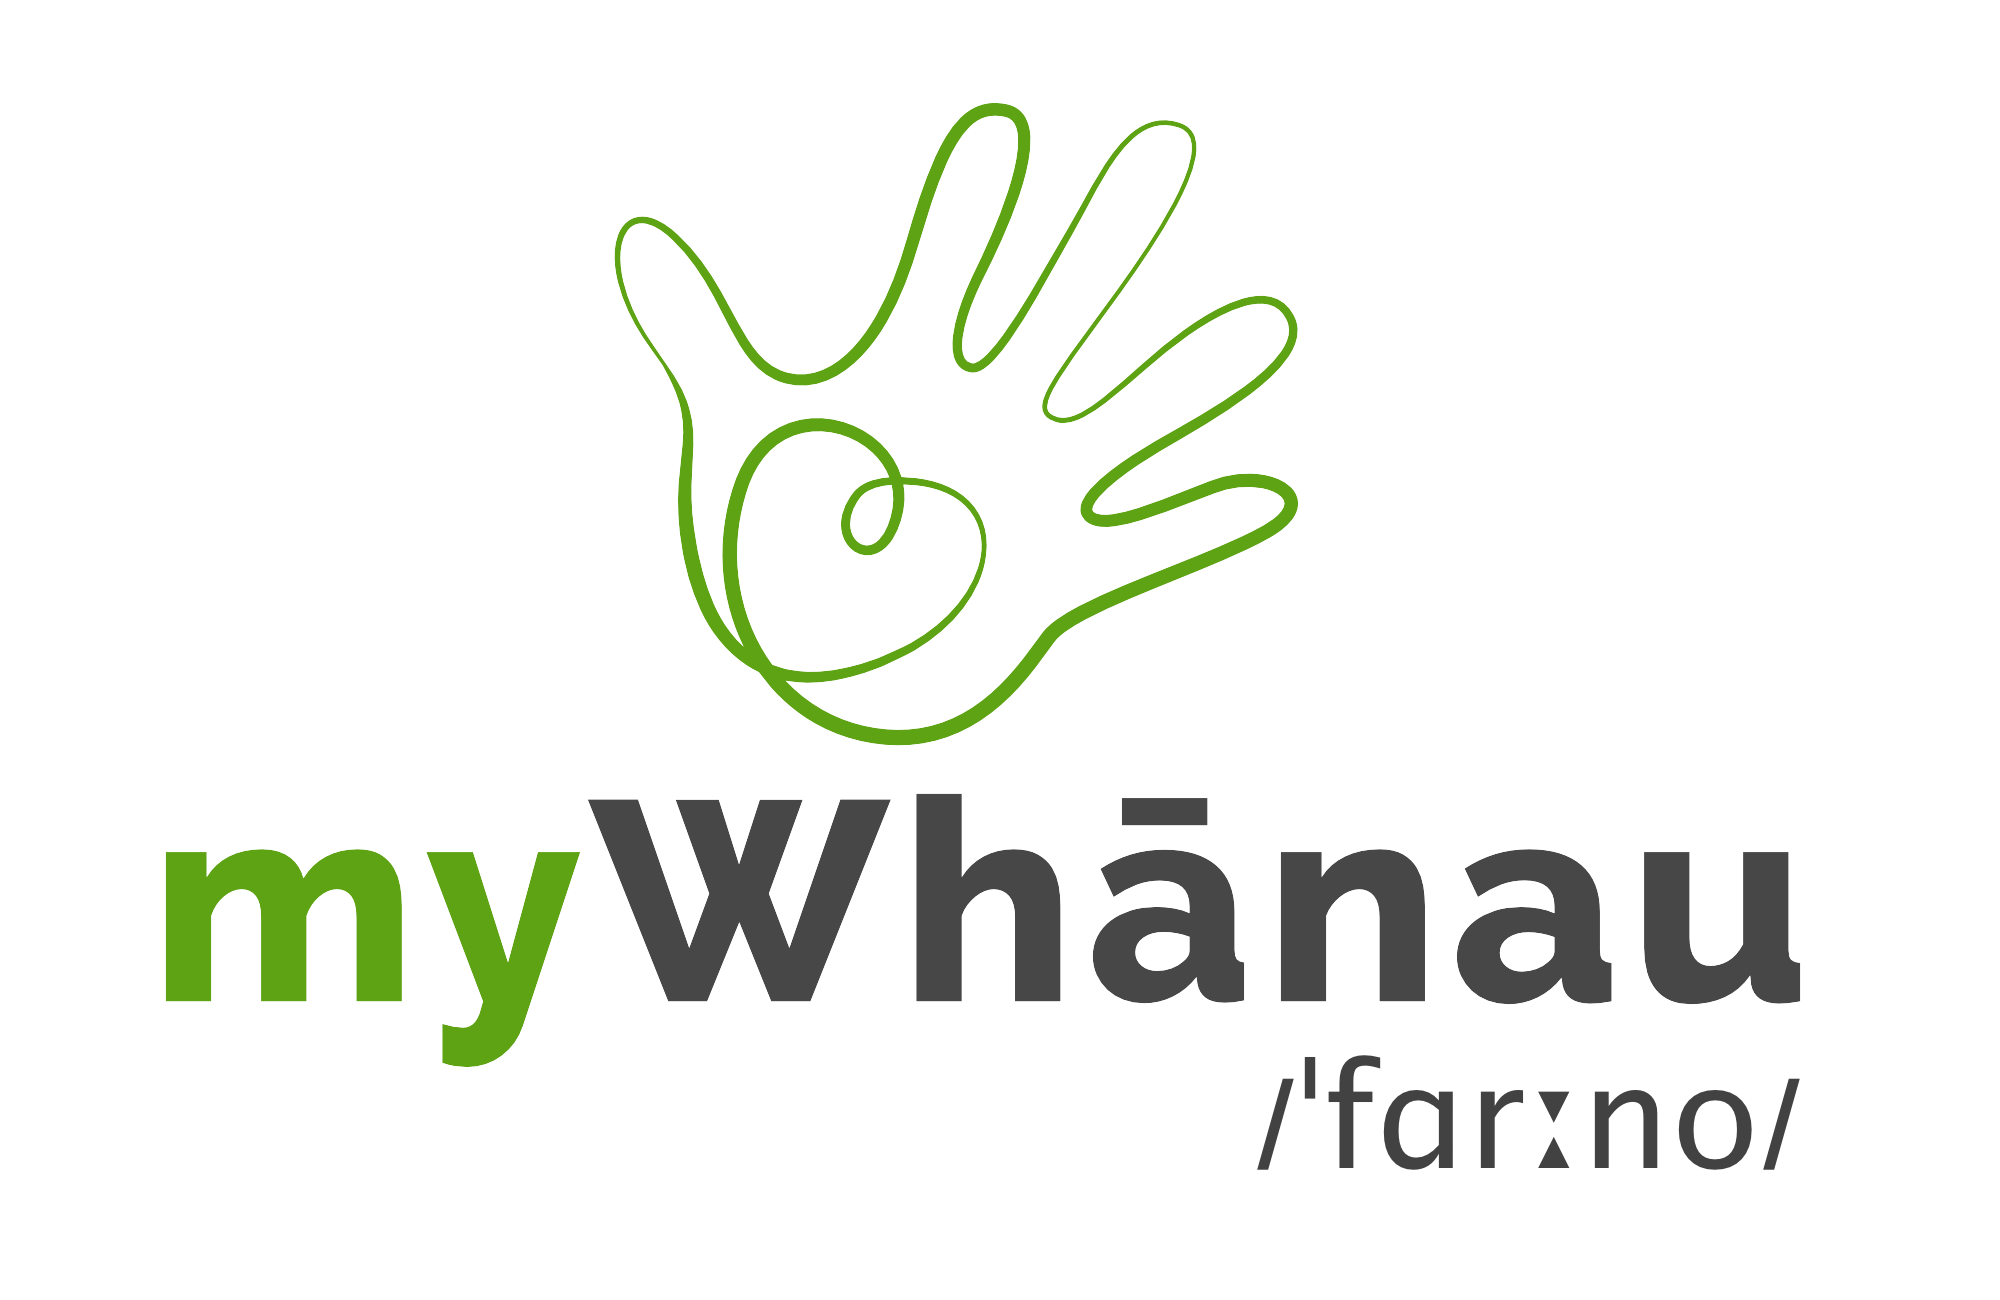 myWhanau-logo-phonetic